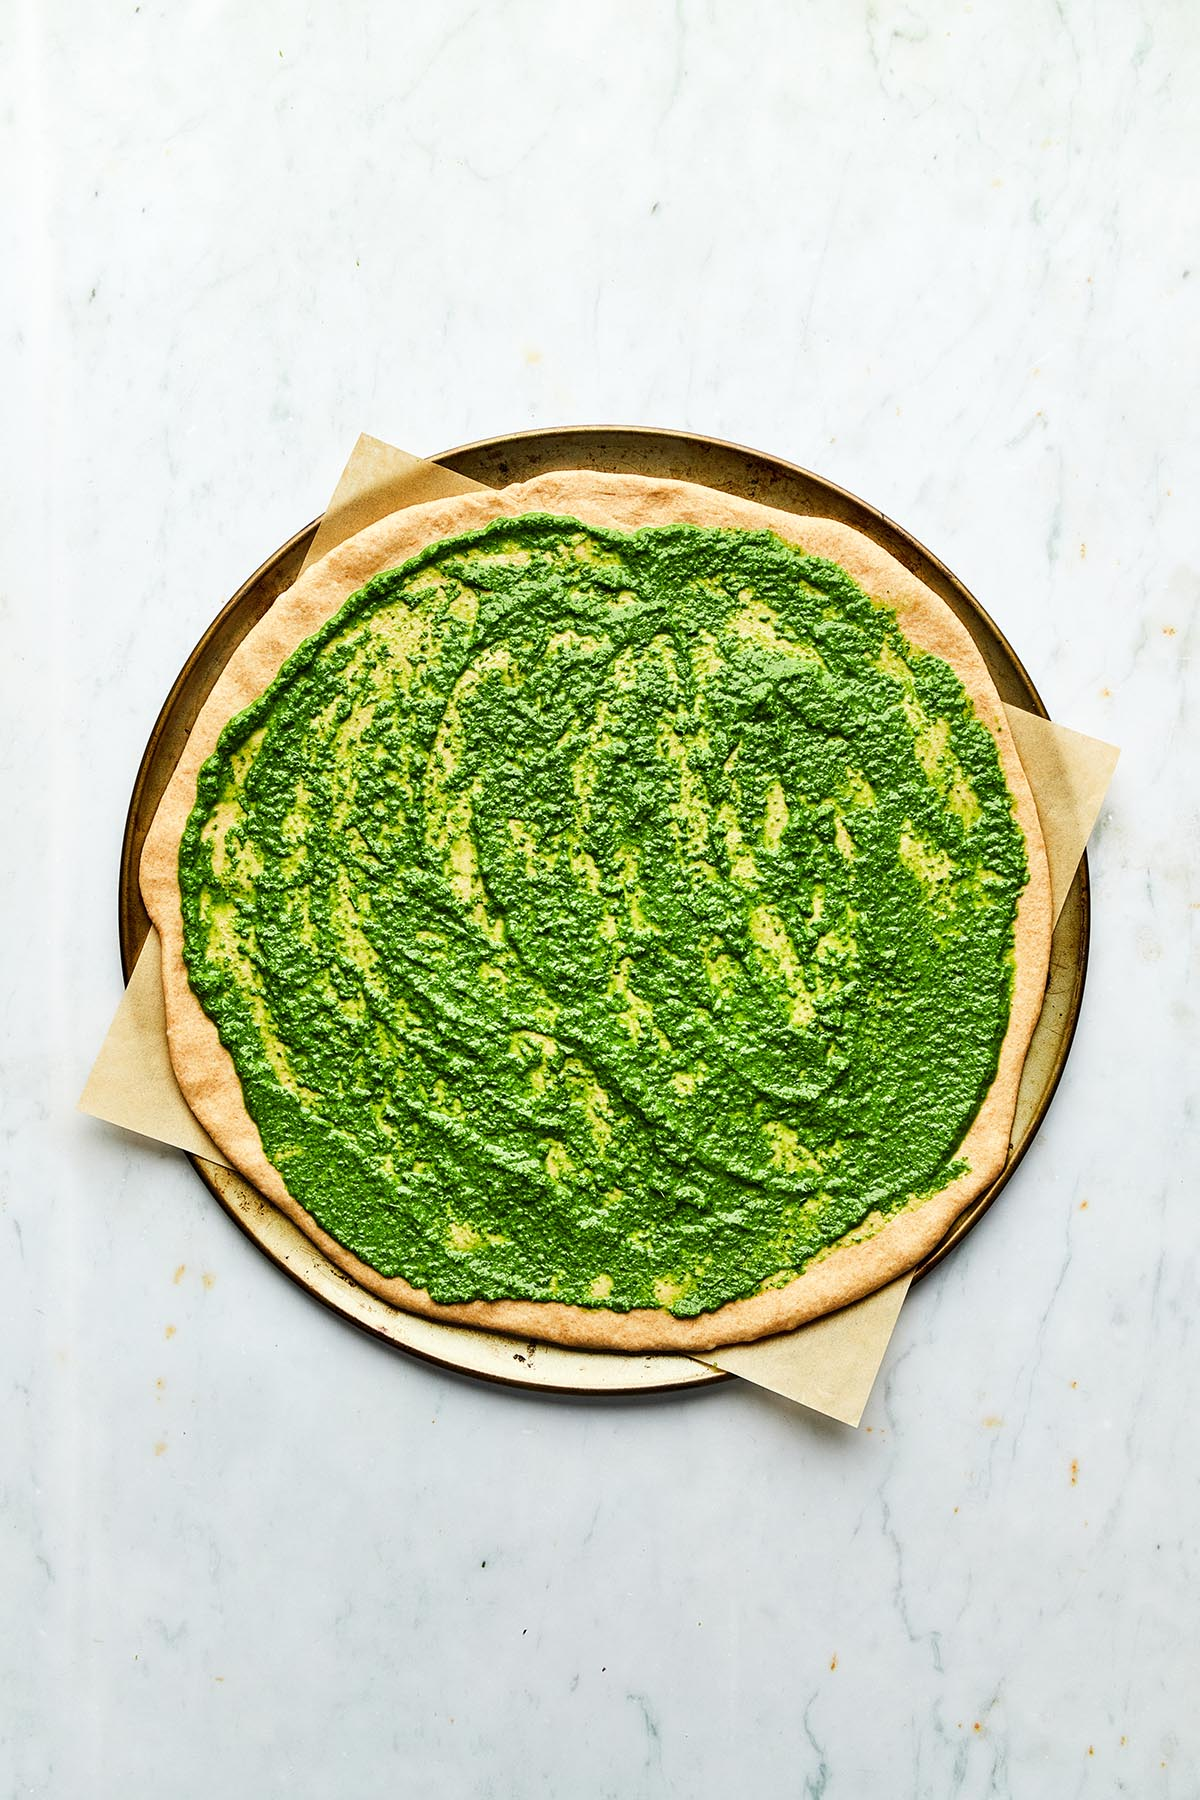 An unbaked pizza spread with green pesto as the base.